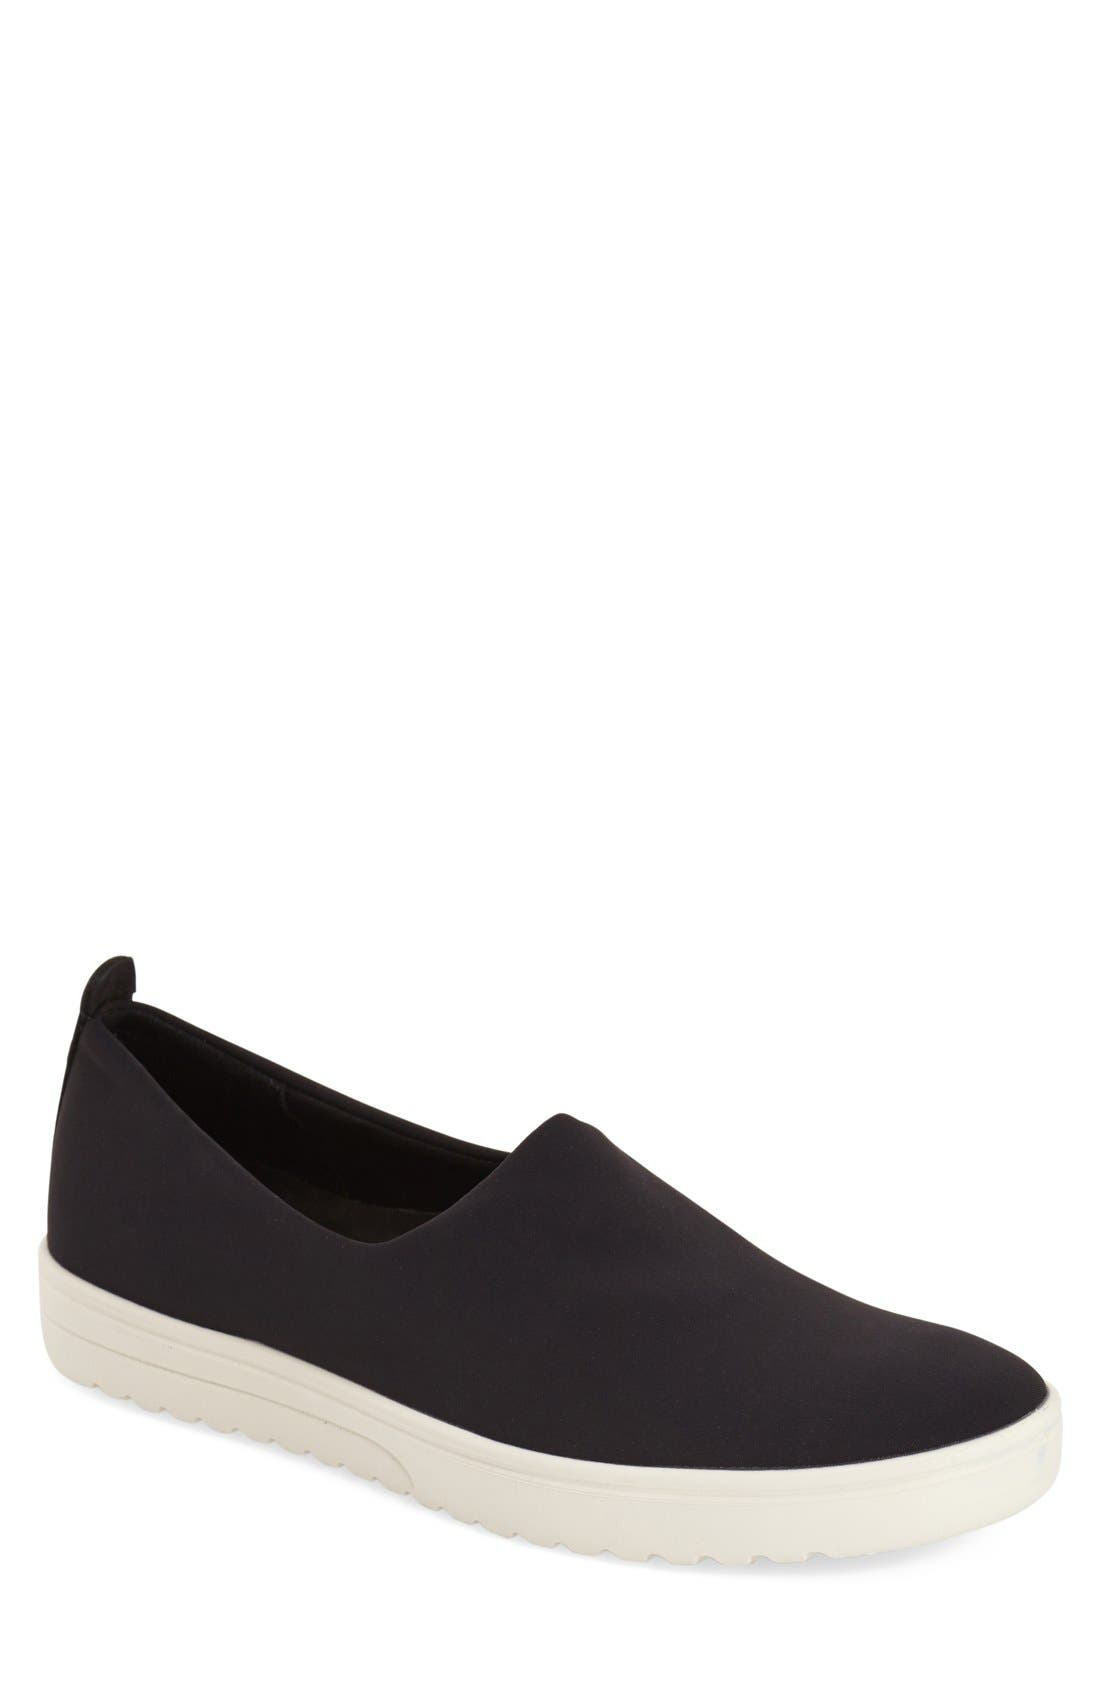 'Fara' Slip-On Sneaker,                             Main thumbnail 1, color,